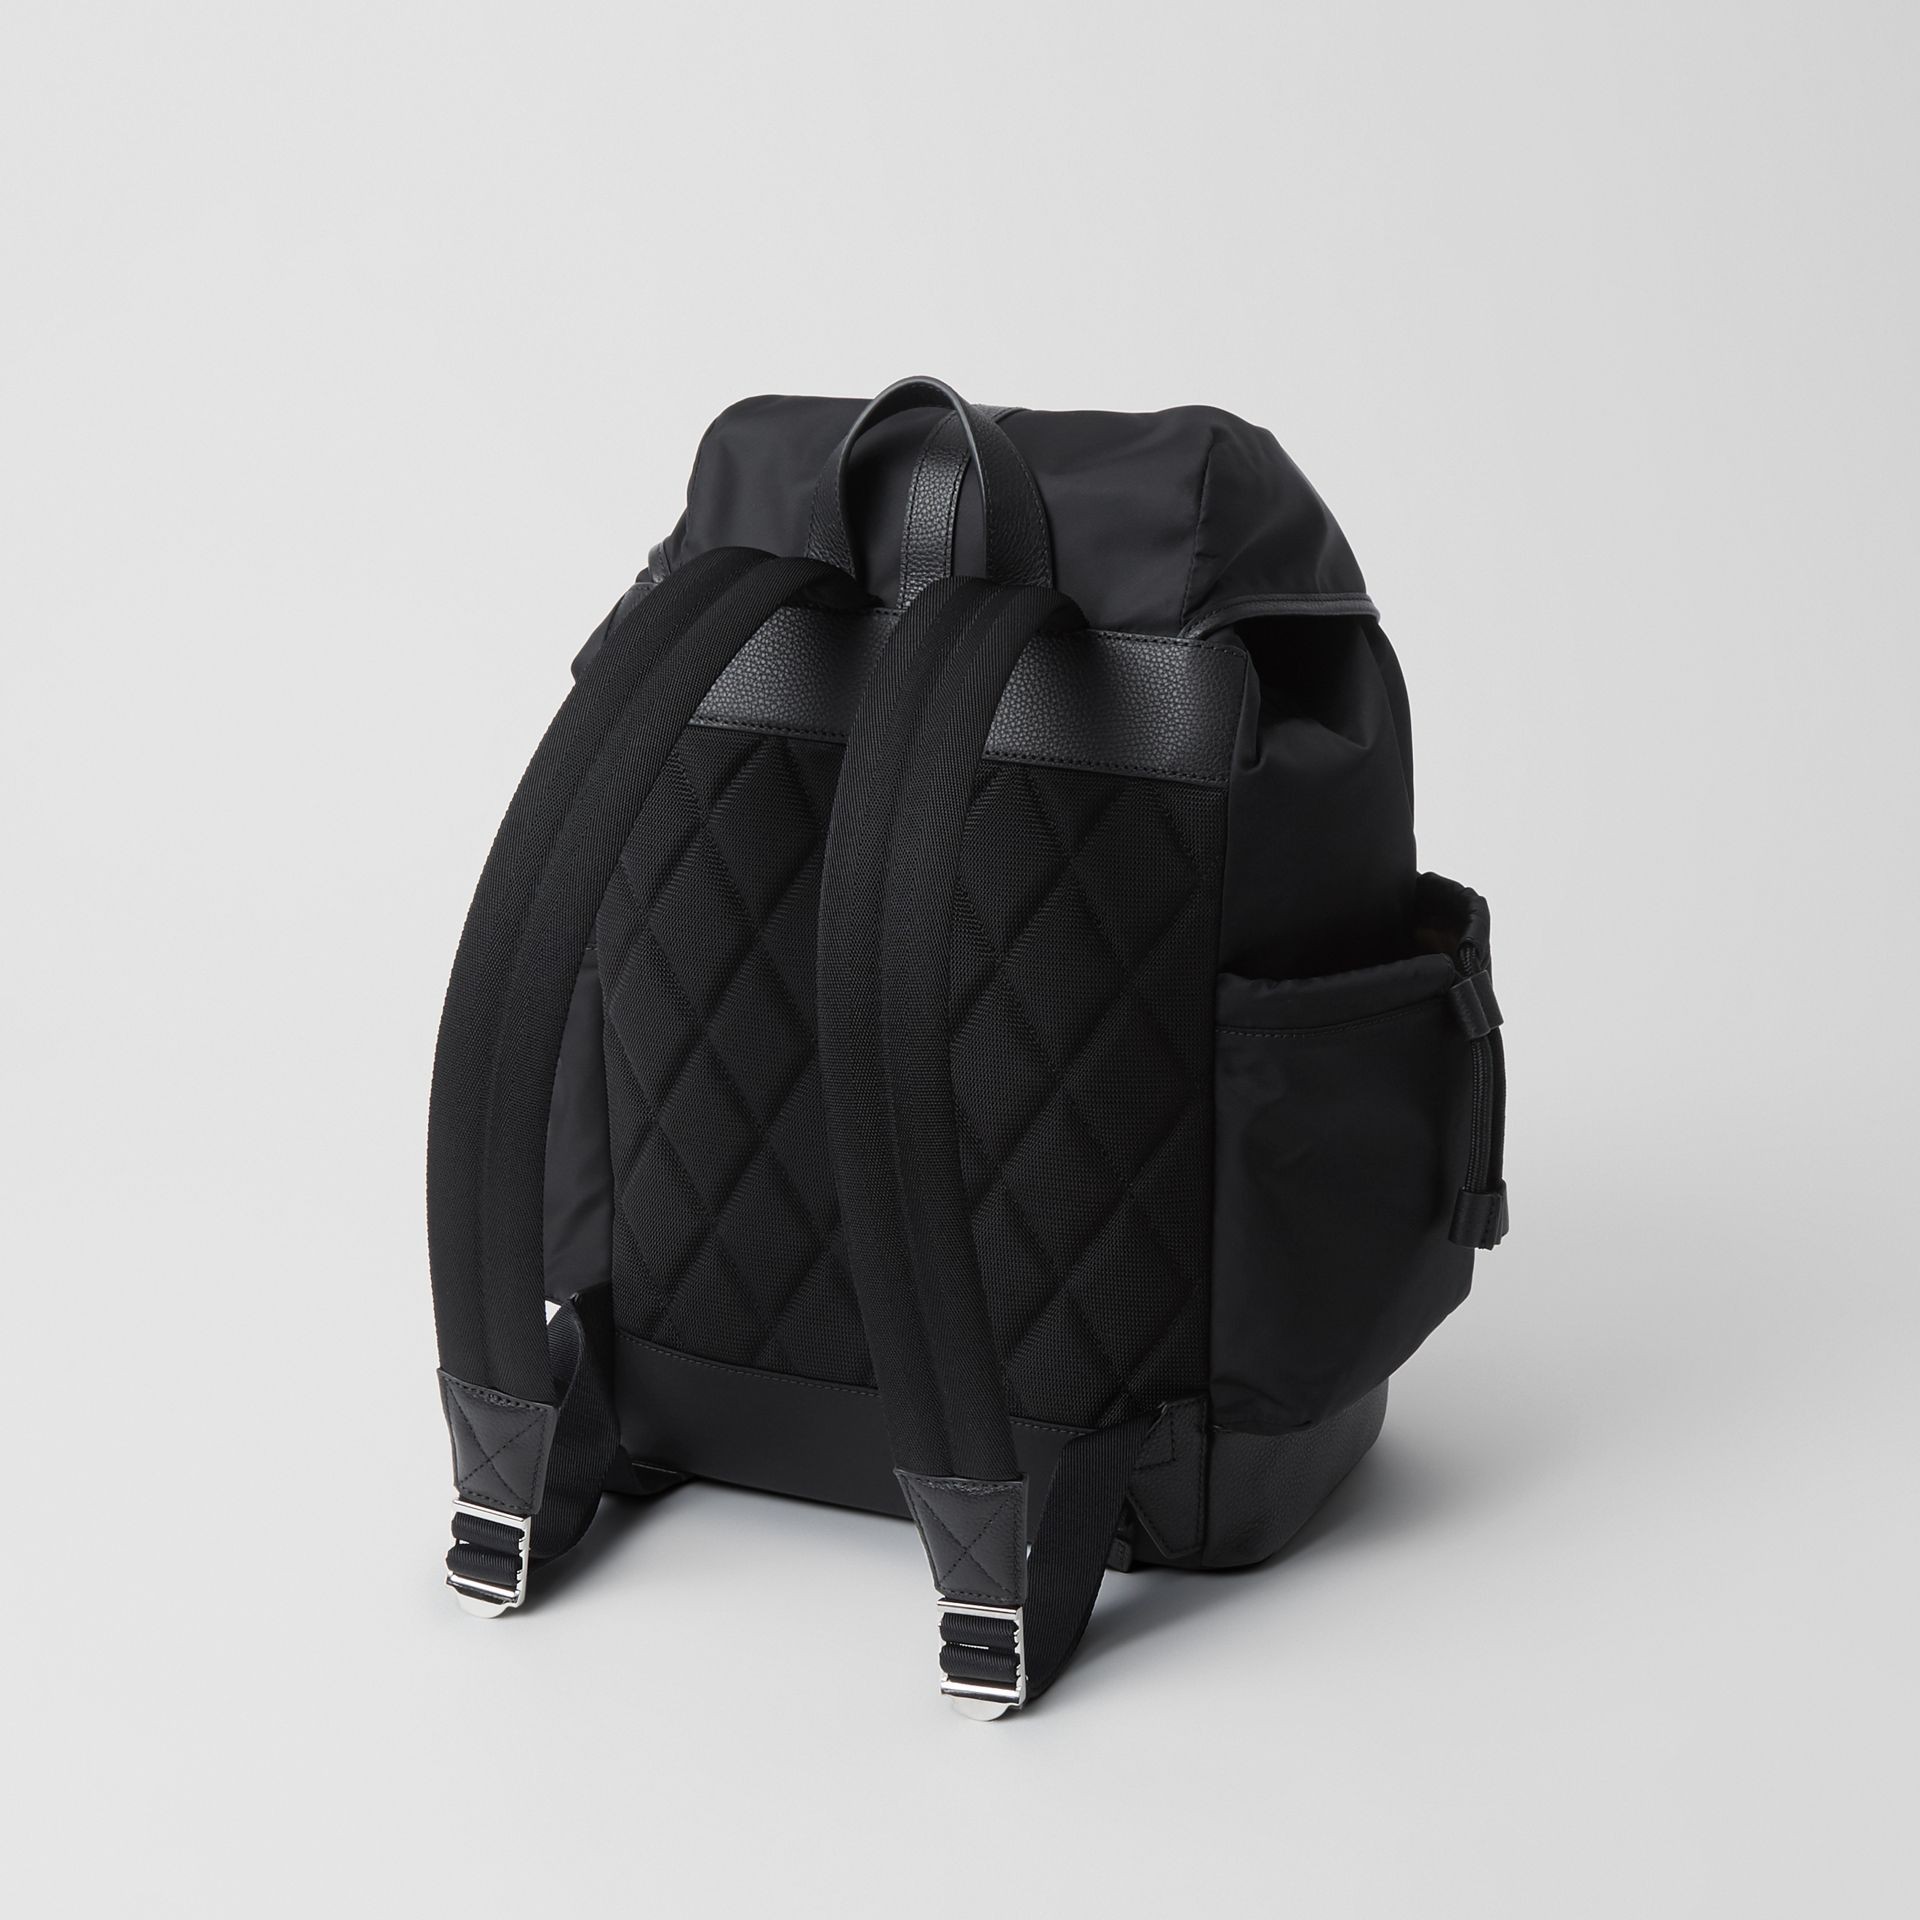 Leather Trim Baby Changing Rucksack in Black - Children | Burberry United States - gallery image 2